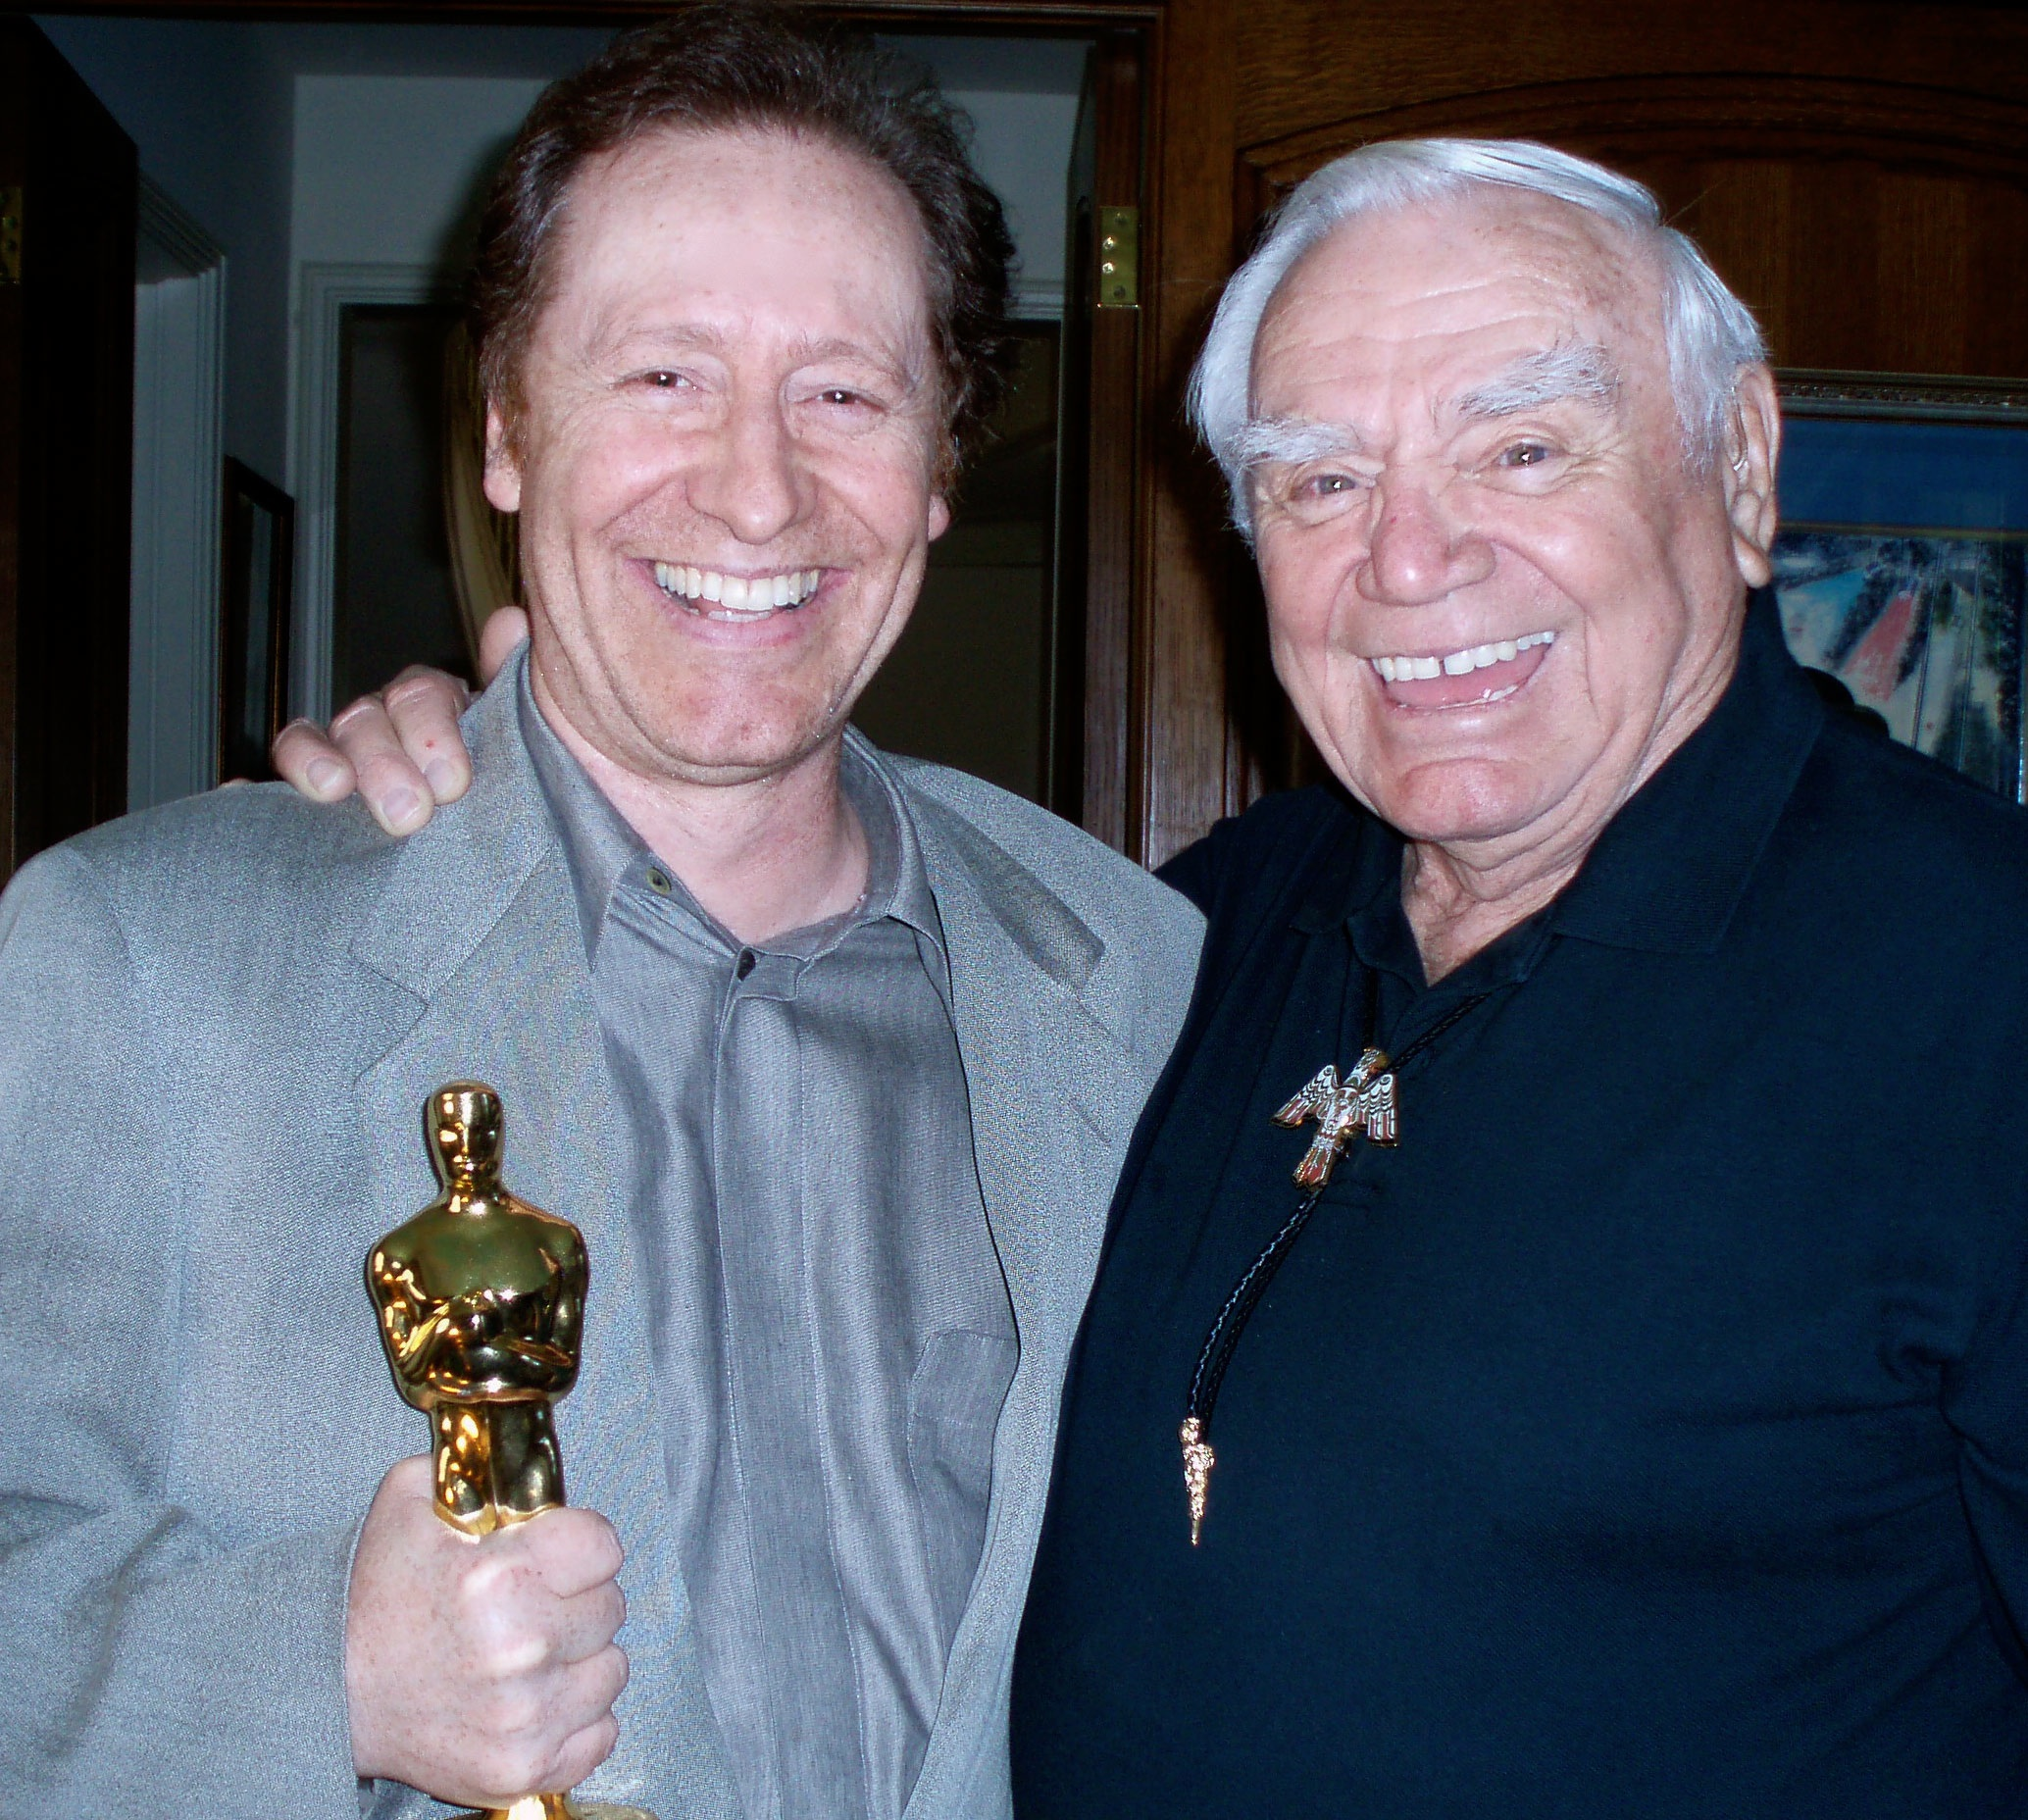 """Craig producing Ernest Borgnine his """"father"""" from Award Winning special episode of """"Run For Your Life"""""""